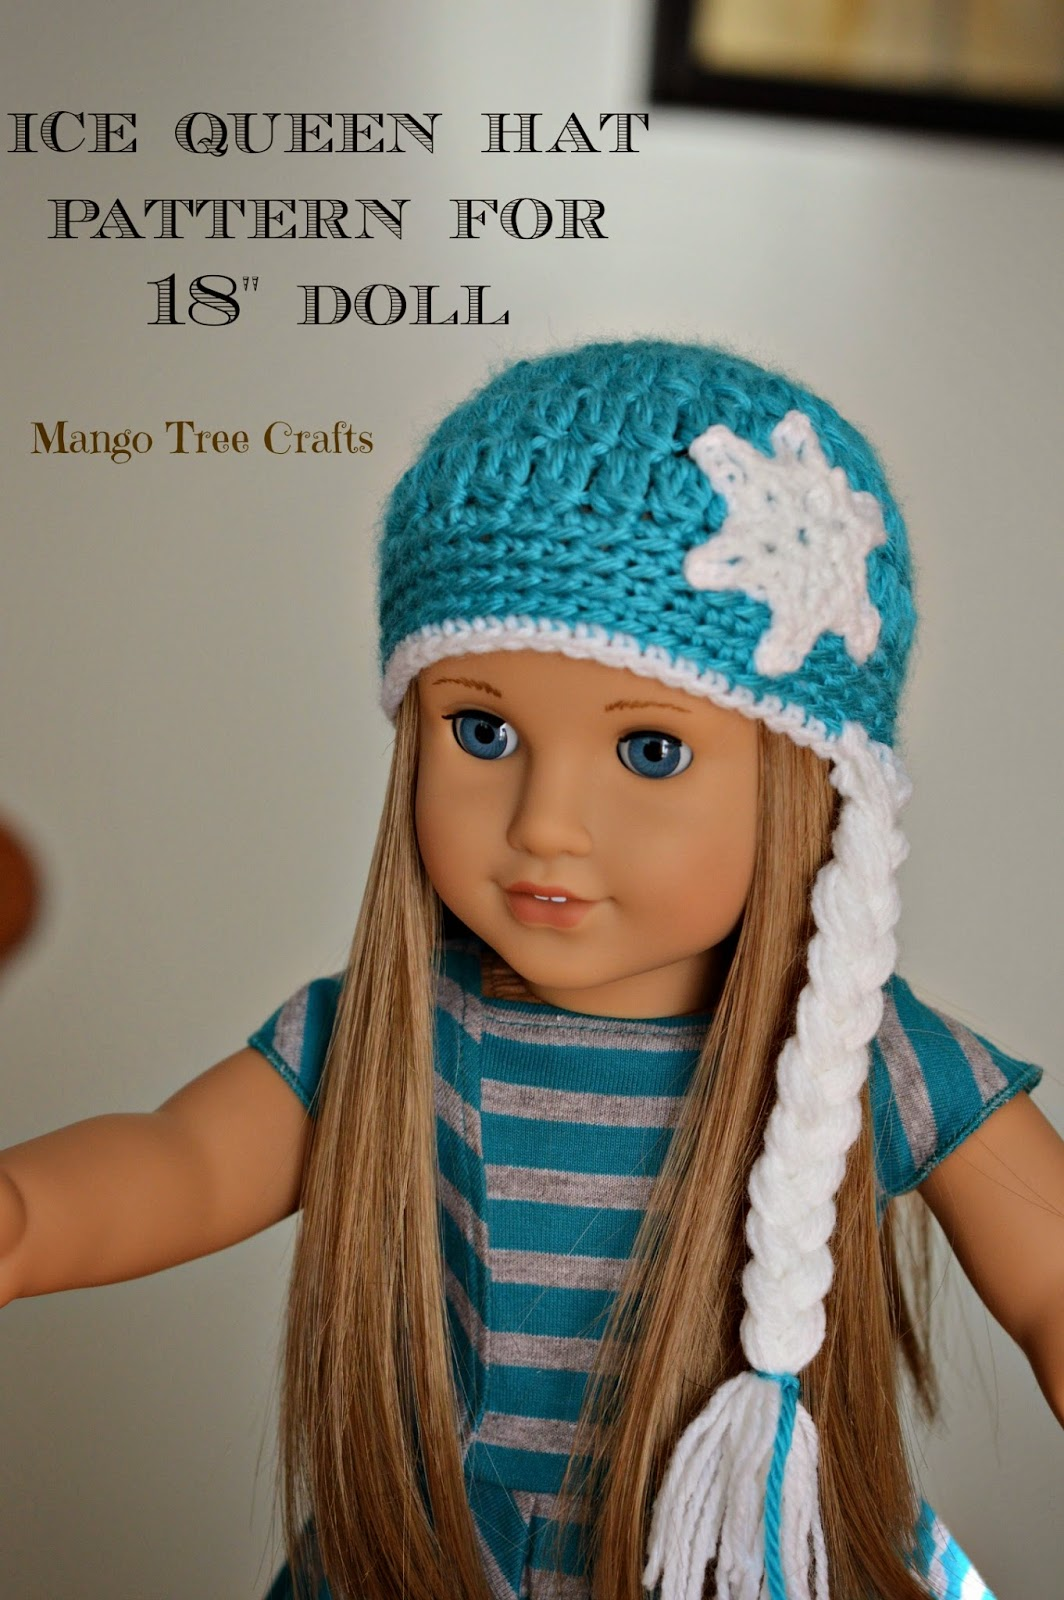 Ice Queen Crochet Hat Pattern for 18″ American Girl Doll